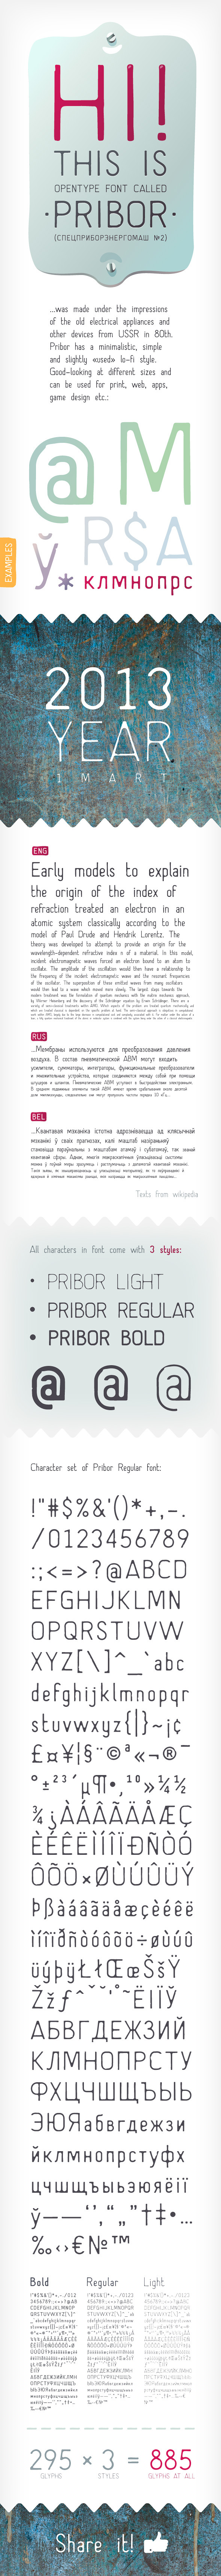 Pribor – Clean Lo-Fi Stencil Font With Cyrillic - Stencil & Type Decorative